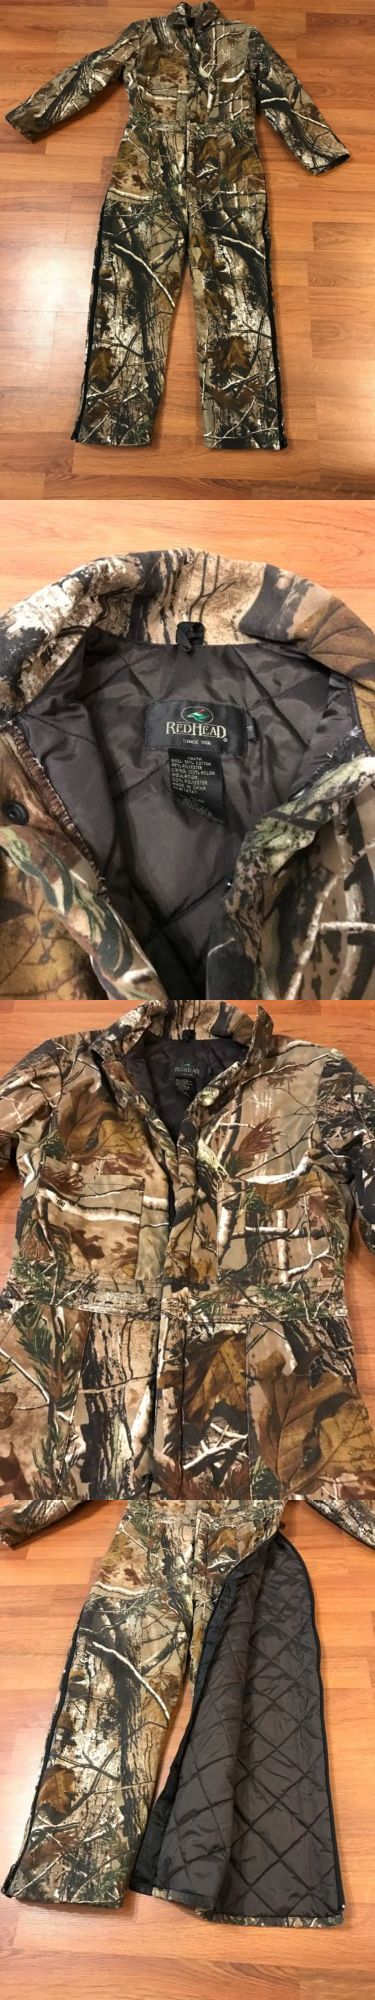 Coveralls 177869: Redhead Youth Size 14 Insulated Coveralls Real Tree New!!! Hunting Camouflage -> BUY IT NOW ONLY: $35 on eBay!